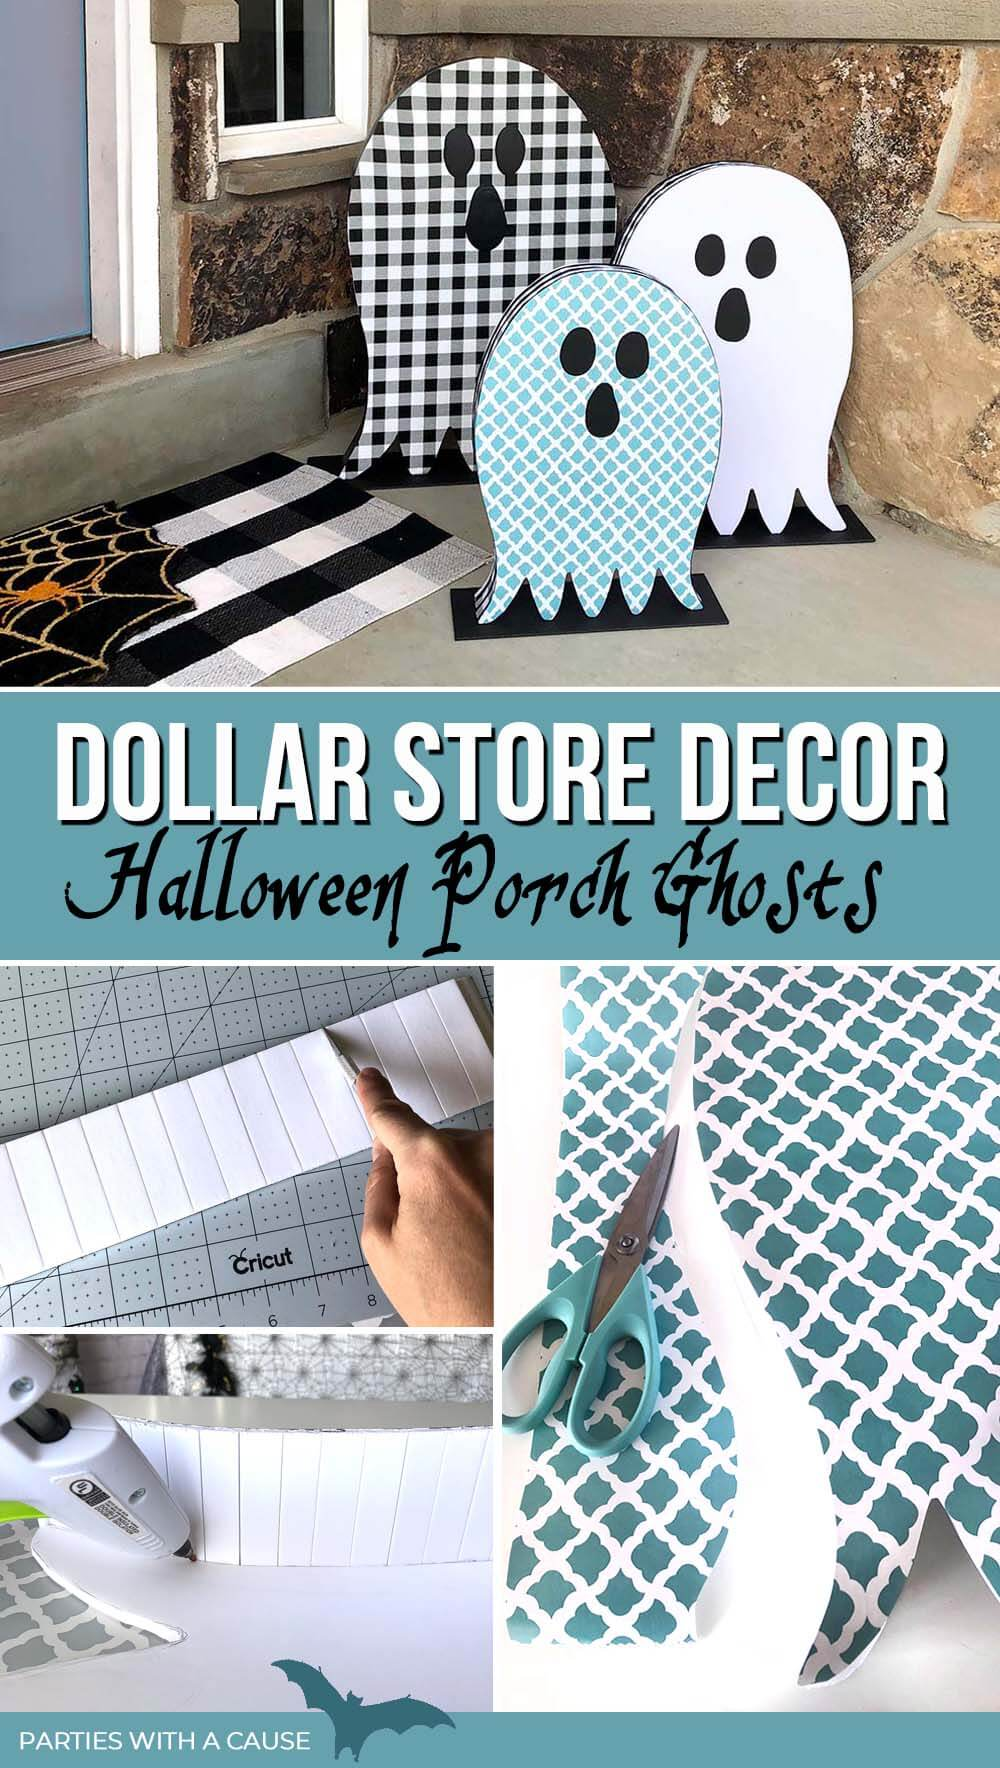 Dollar Store Decor Halloween Ghosts by Salt Lake Party Stylist